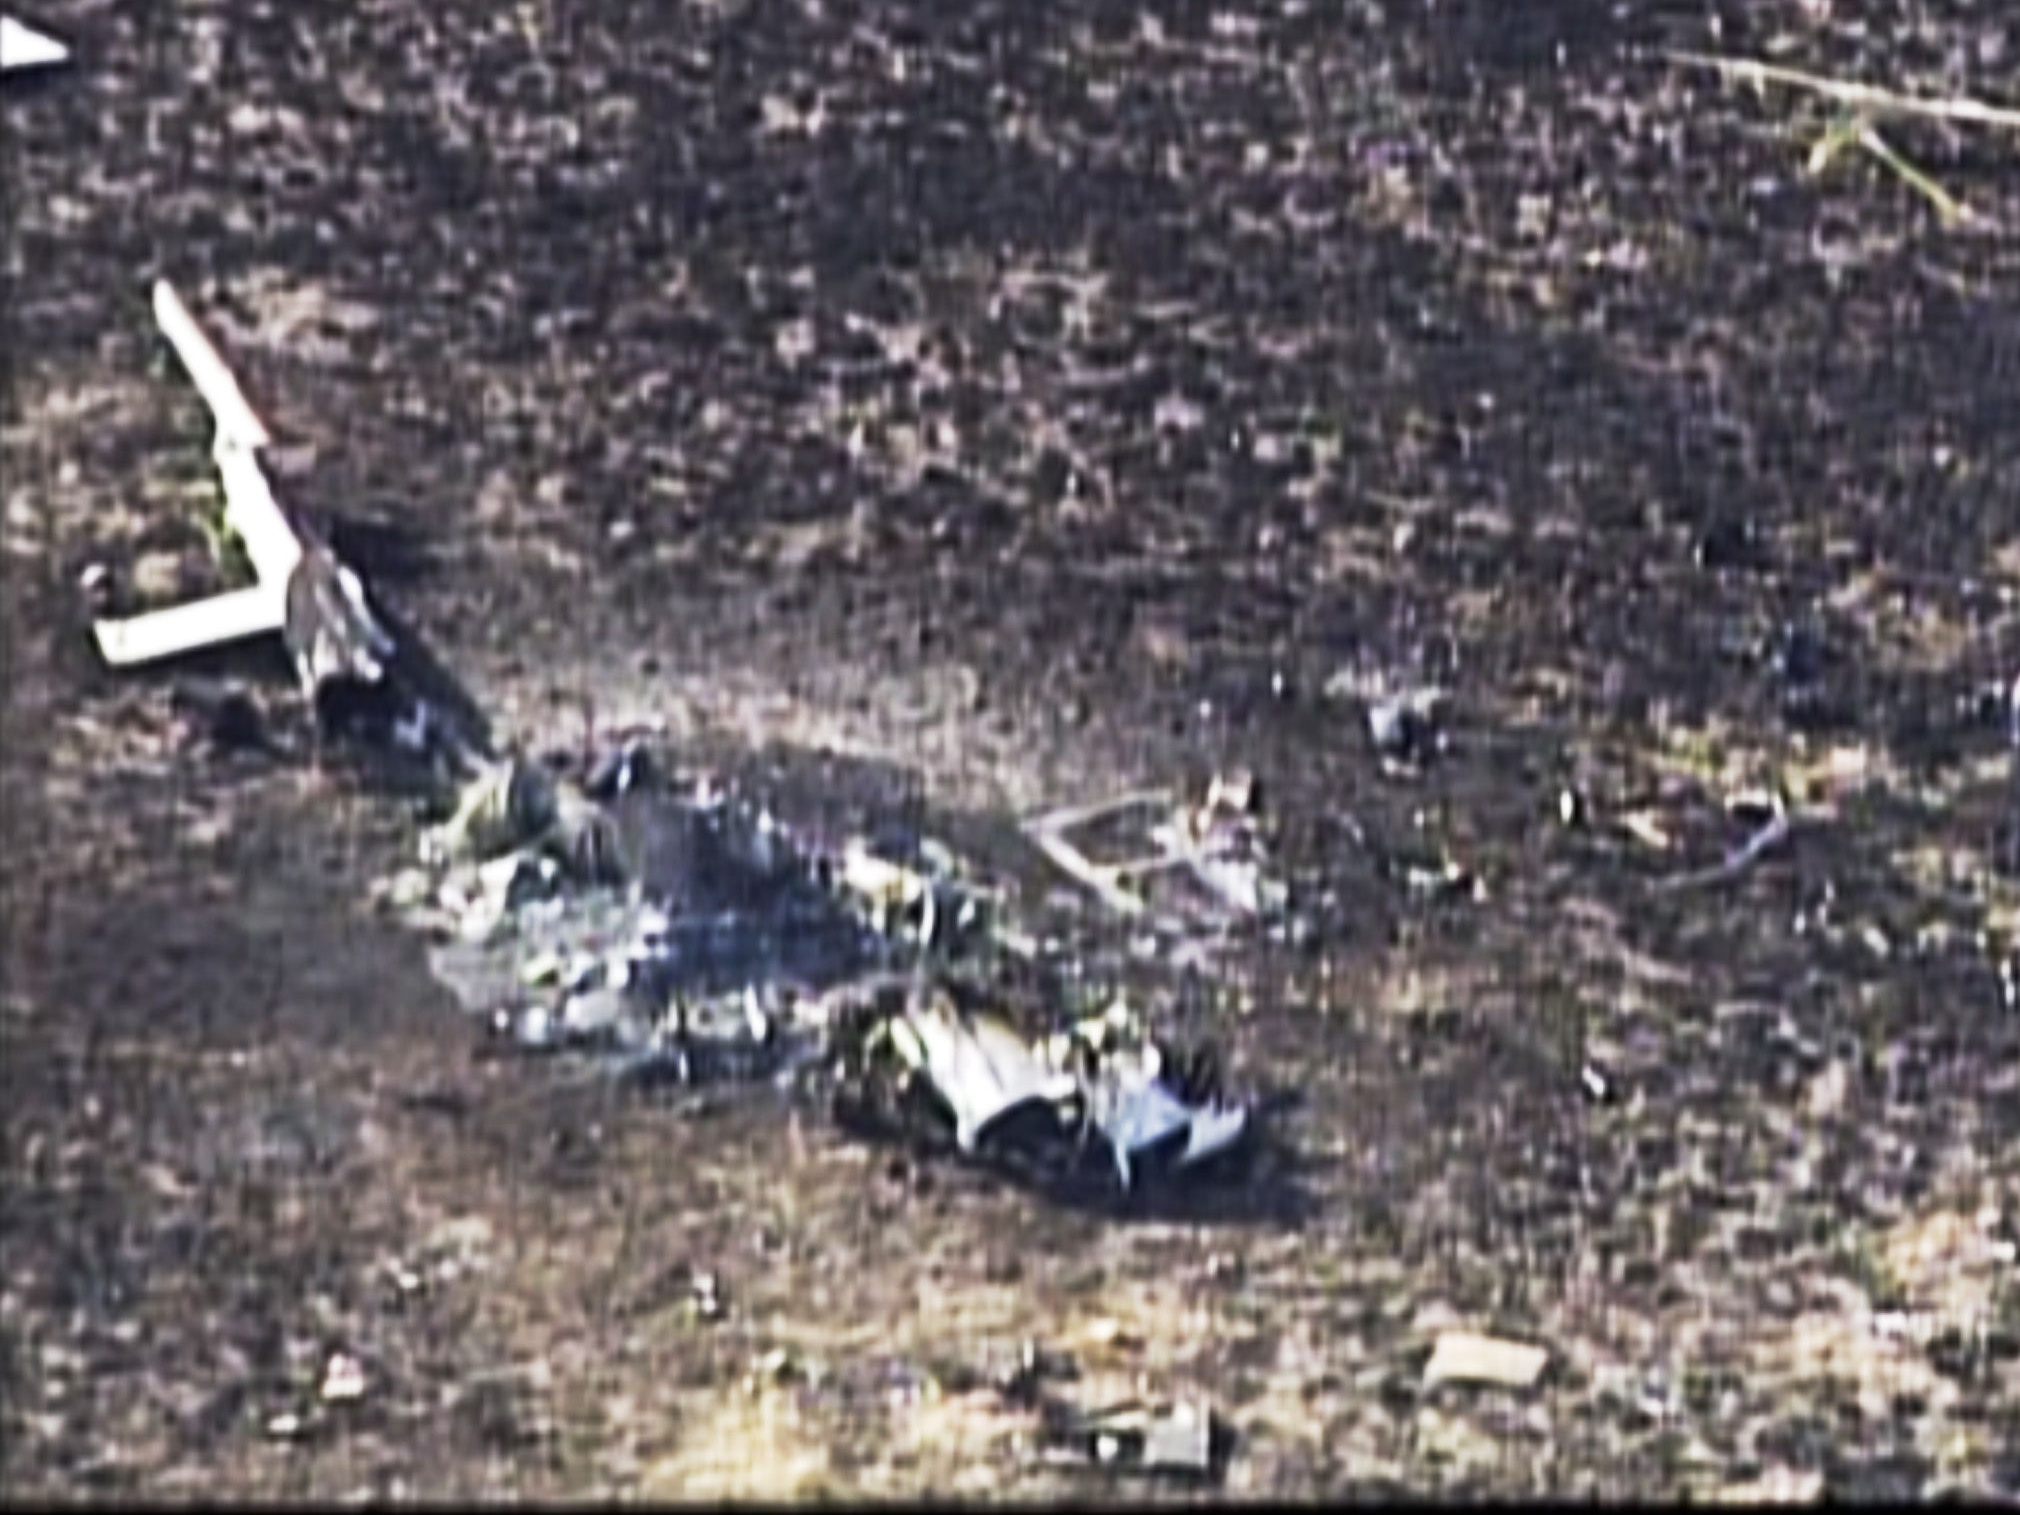 Frame from video showing the wreckage of a helicopter that crashed in a mountainous rural area of northern New Mexico